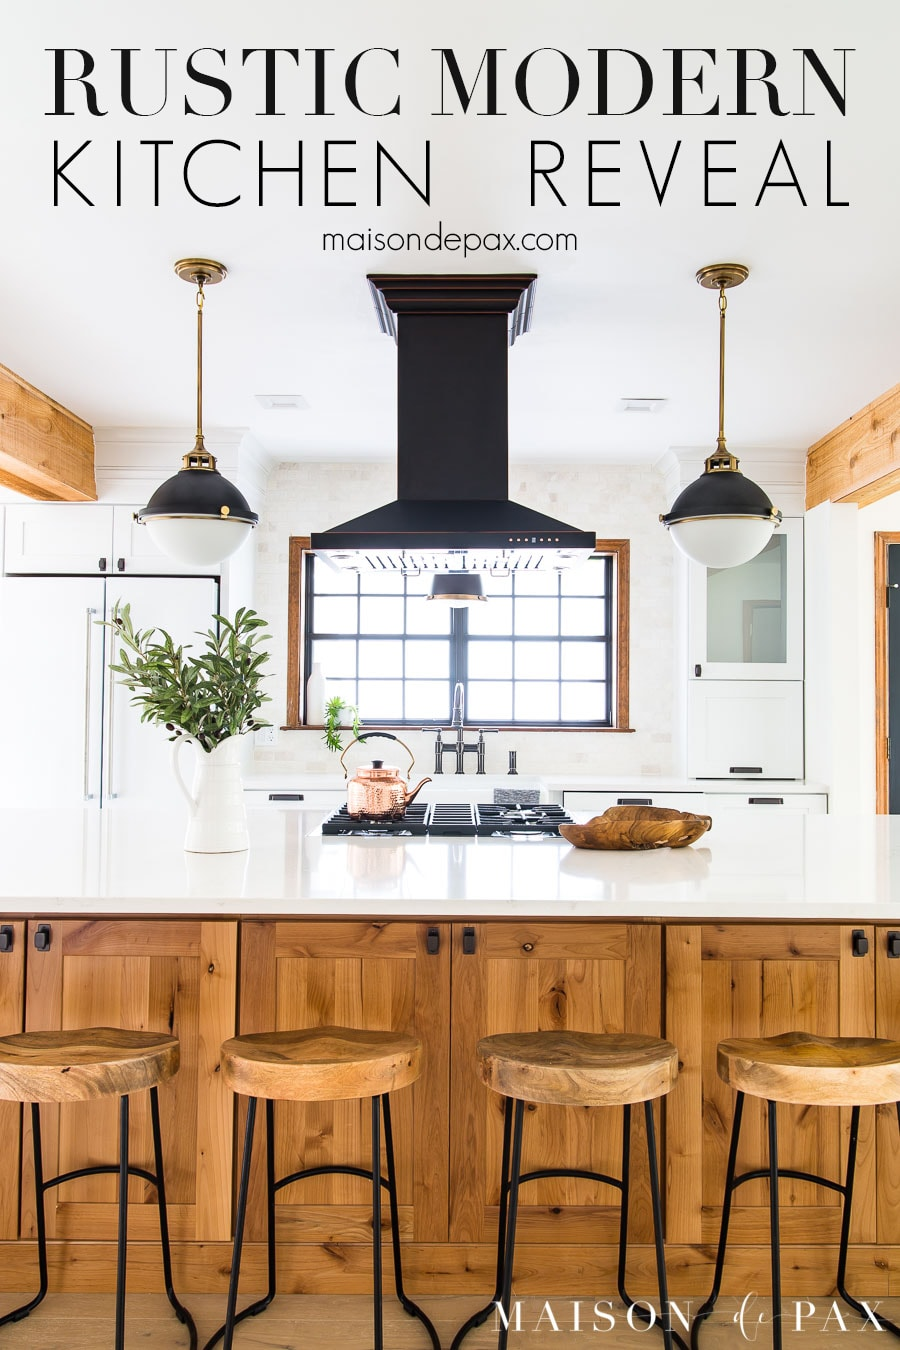 Rustic Modern Farmhouse Kitchen Reveal - Maison de Pax on industrial kitchen bar ideas, industrial style kitchen ideas, industrial ceiling design ideas, modern industrial design ideas, industrial entryway design ideas, industrial storage design ideas, industrial garage design ideas, industrial family room design ideas, industrial interior design bedroom ideas, industrial kitchen decor ideas, horticulture design ideas, vintage small kitchen ideas, cool wire fences ideas, industrial siding ideas, industrial jewelry ideas, stainless steel design ideas, industrial restaurant design ideas, industrial vastu, pool table design ideas, industrial landscape design ideas,